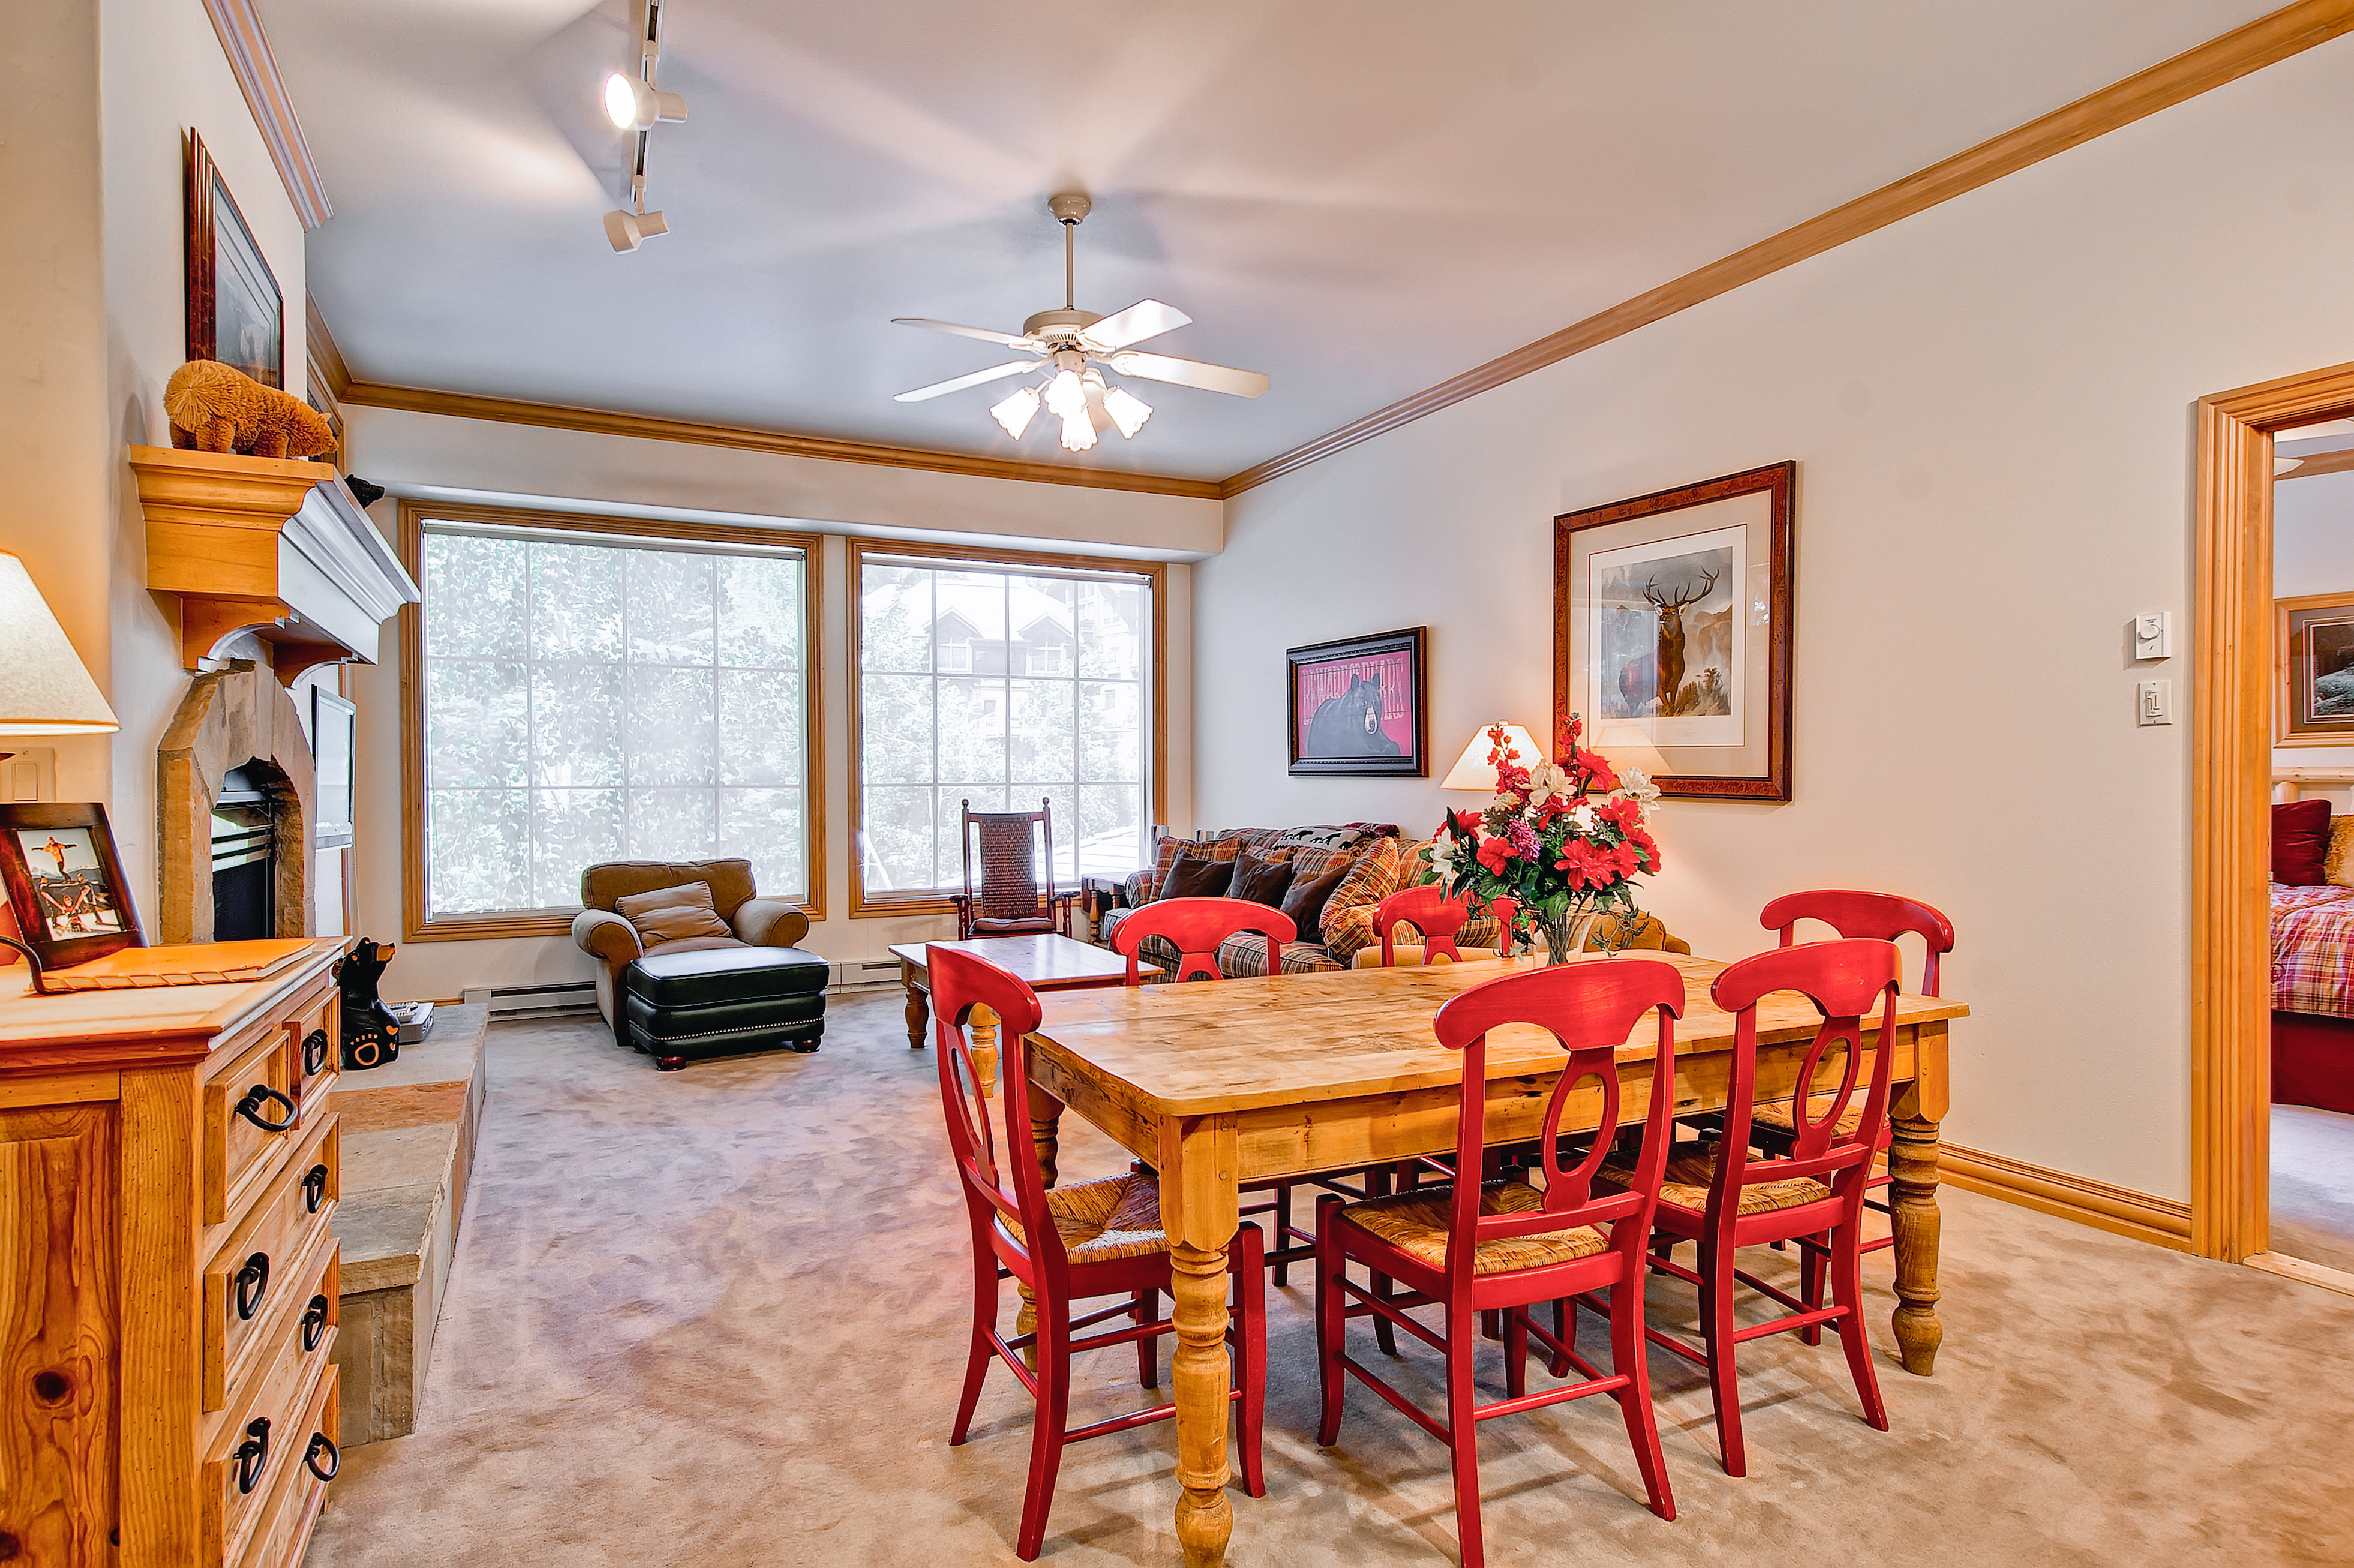 Property Image 1 - Bright, Cozy Condo with Slope View & On-Site Pool & Hot Tub